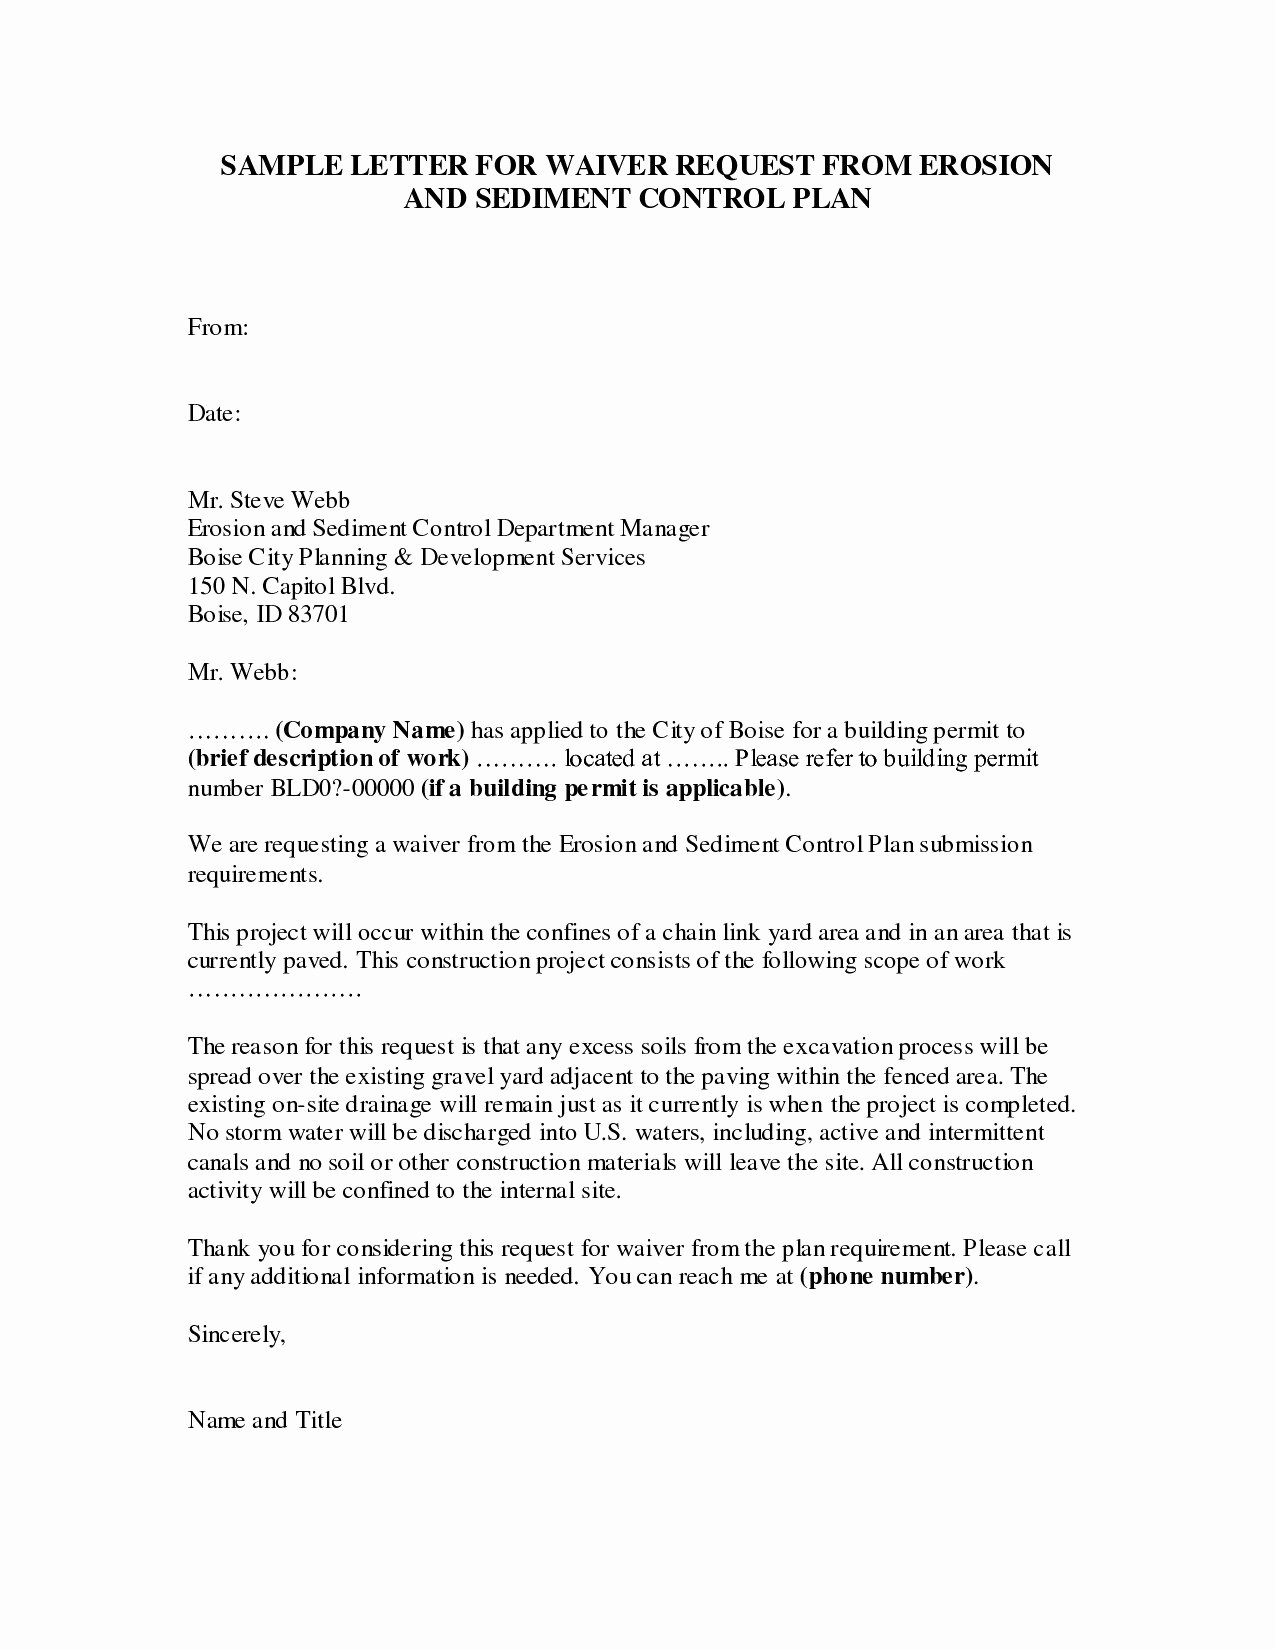 Construction Contract Termination Letter Awesome Service Contract Termination Letter Template Samples